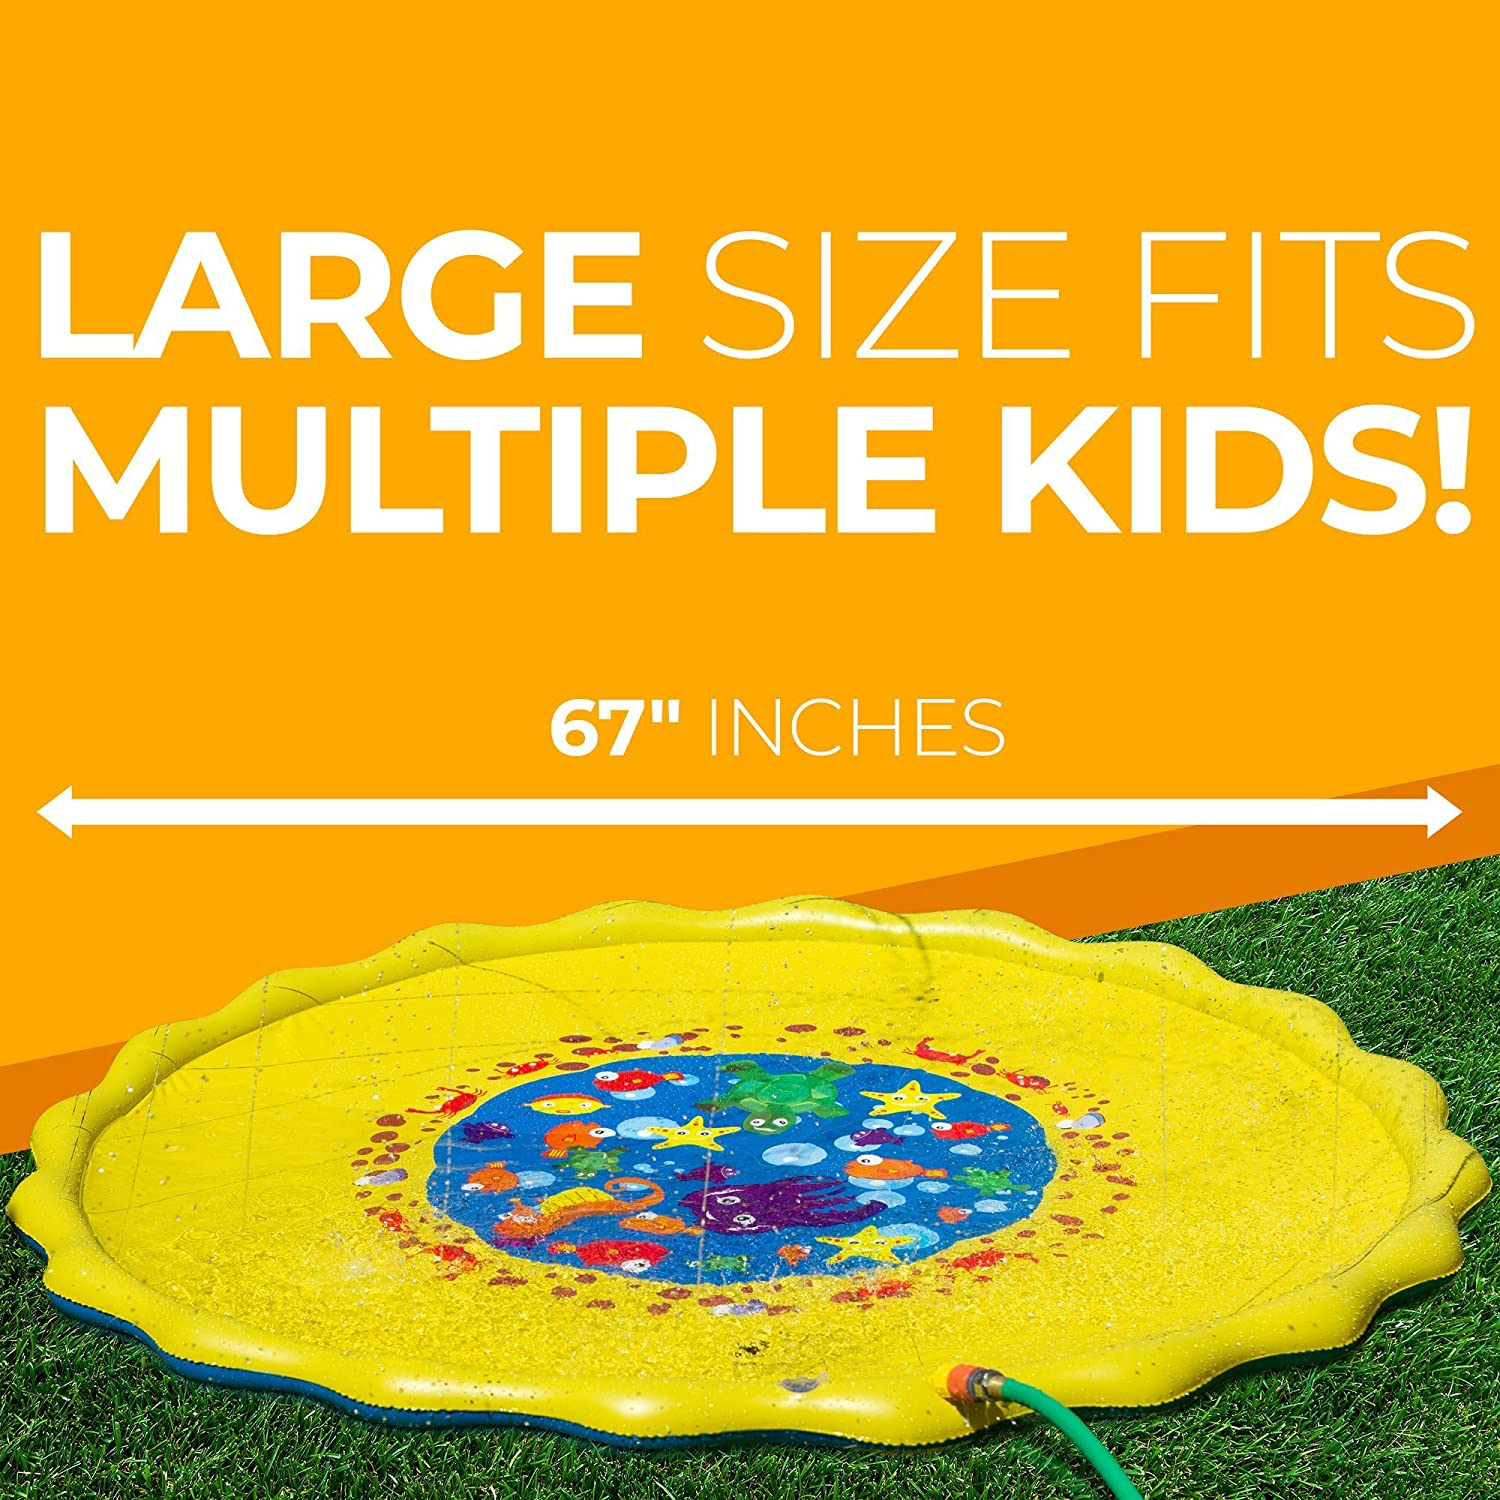 Two Valves Quick Draining 67 inches Large Enough 3 to 4 Kids Perfect Outdoor Water Toy Kids D SERIES Sprinkle /& Splash Play Mat Water Play Mat Kids